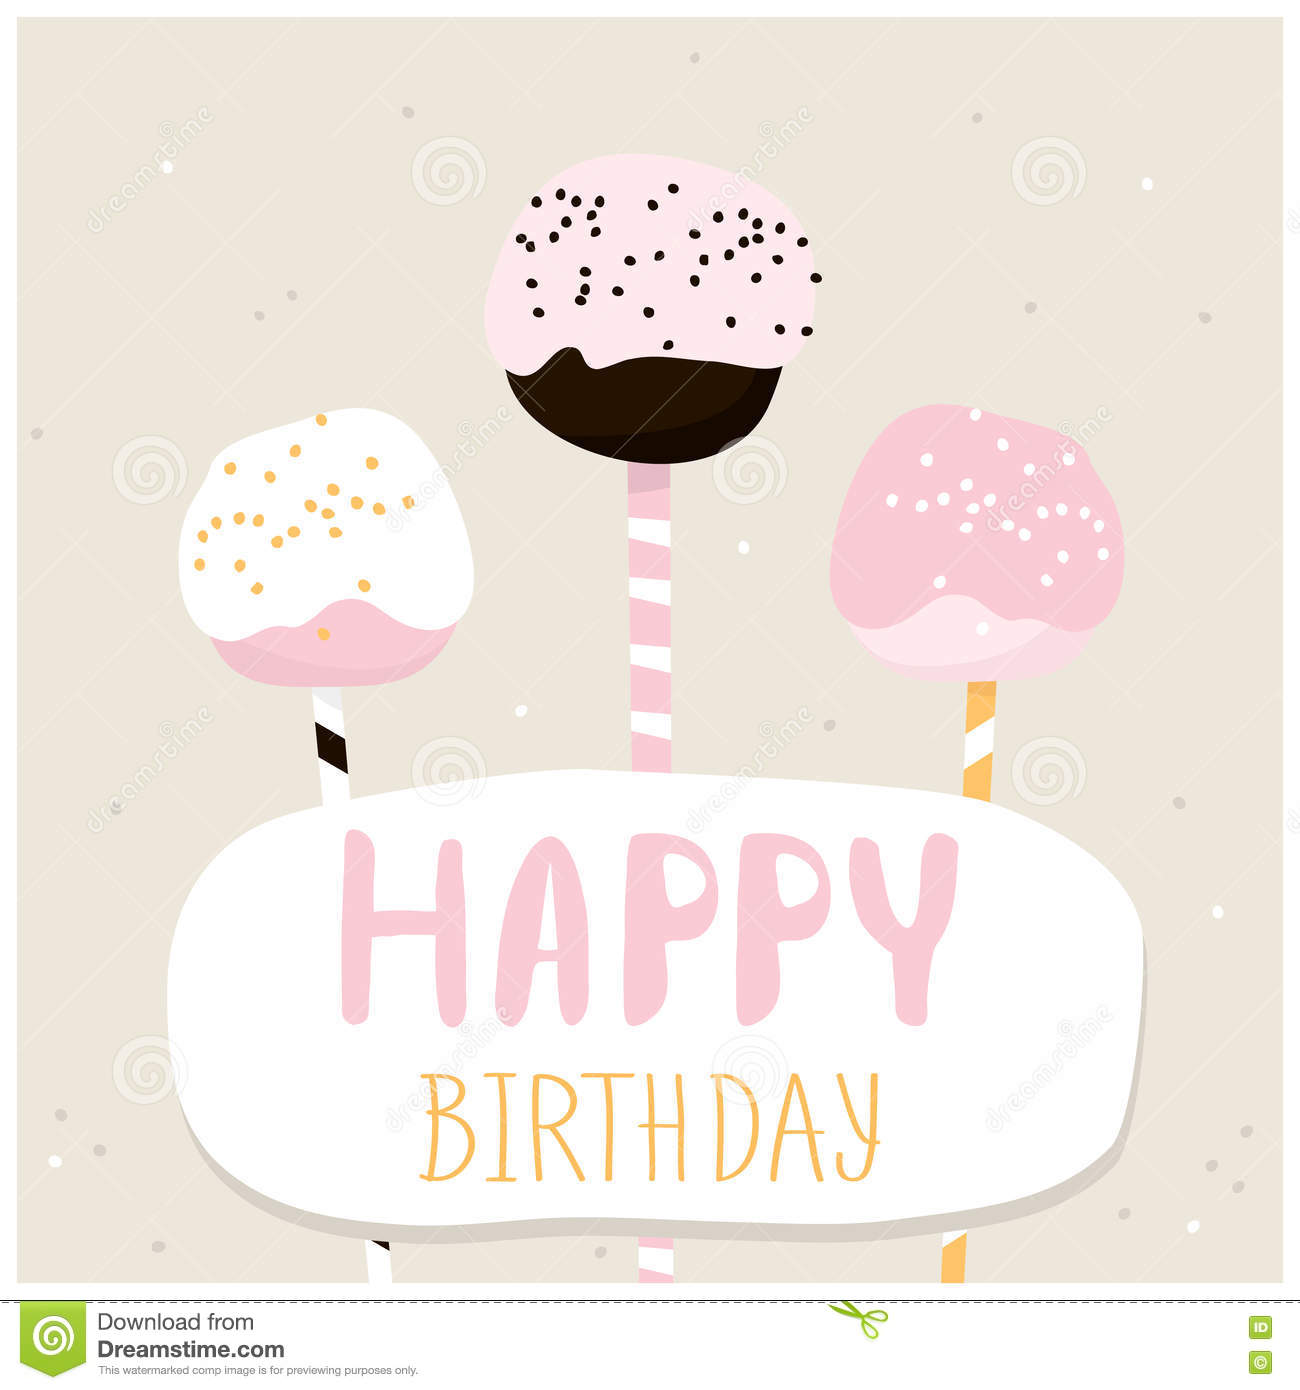 Cute Cake Pops With Happy Birthday Wish. Greeting Card Template. Creative  Happy Birthday Background. Vector Illustration.